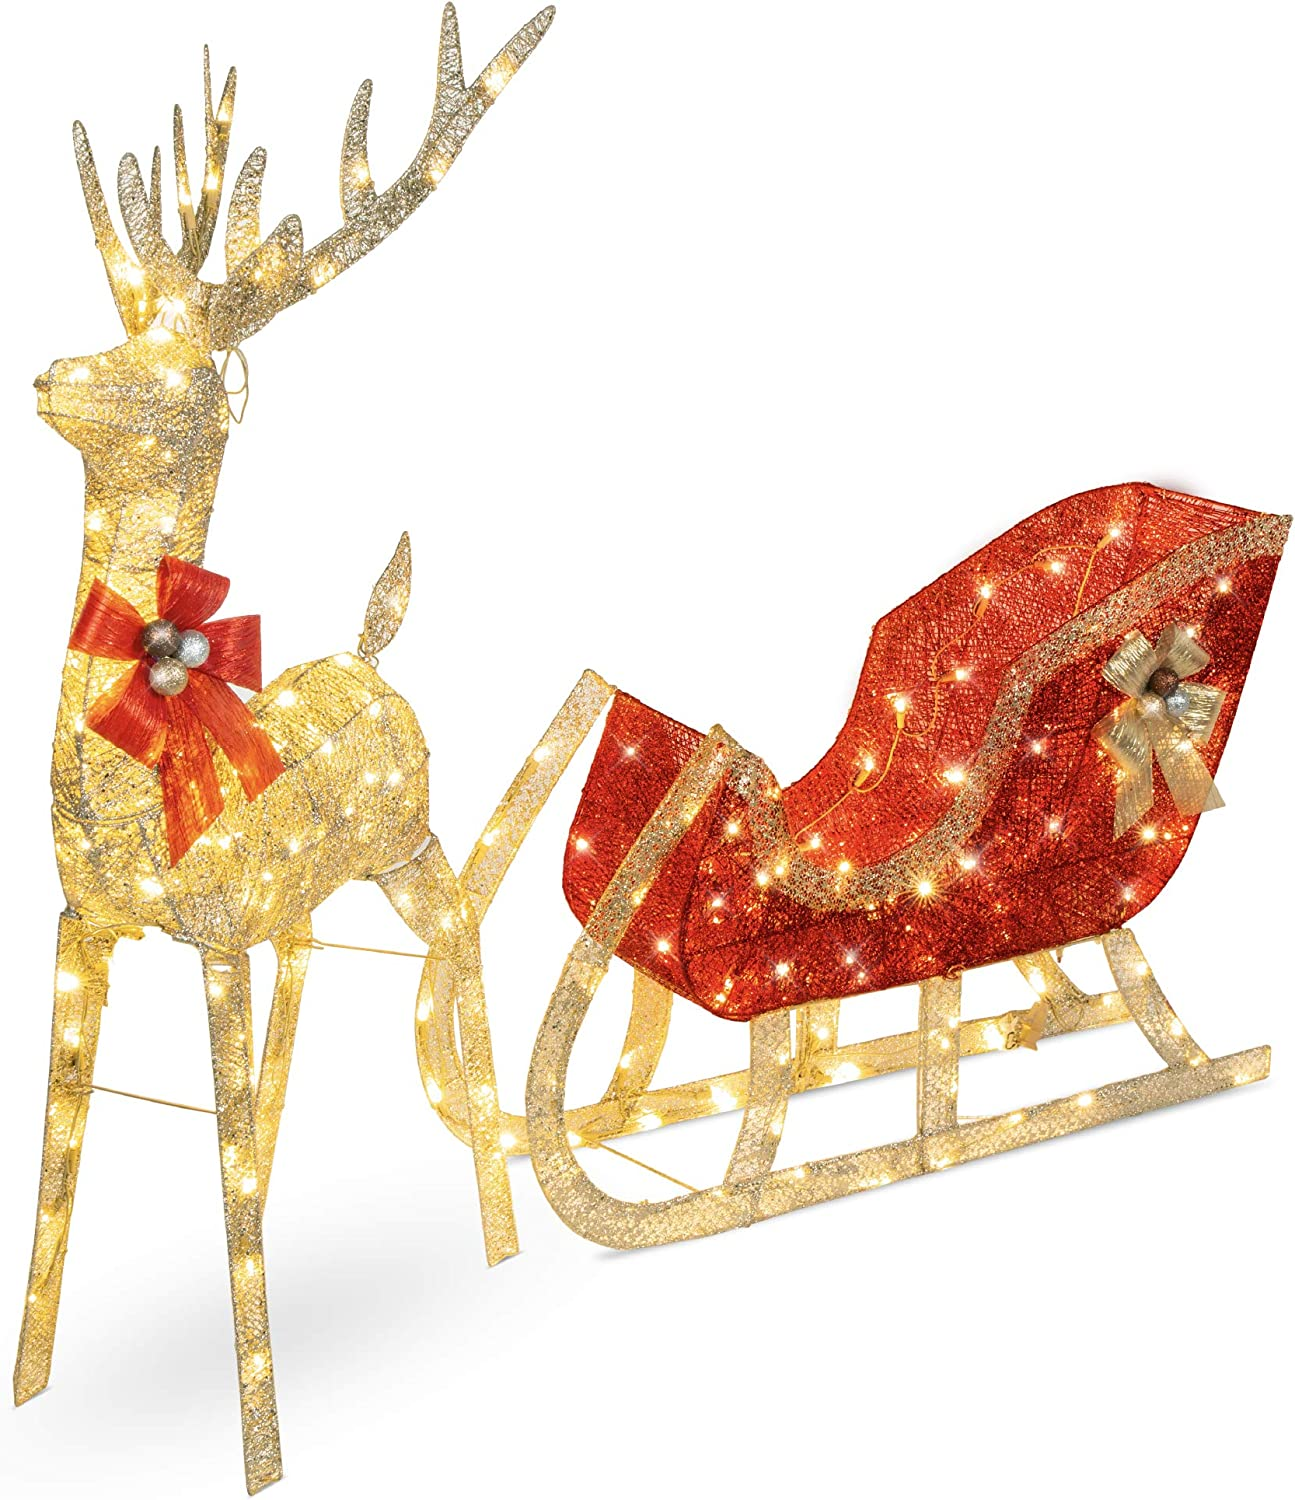 Best Choice Products Lighted Christmas 4ft Reindeer & Sleigh Outdoor Yard Decoration Set w/ 170 LED Lights, Stakes, Zip Ties